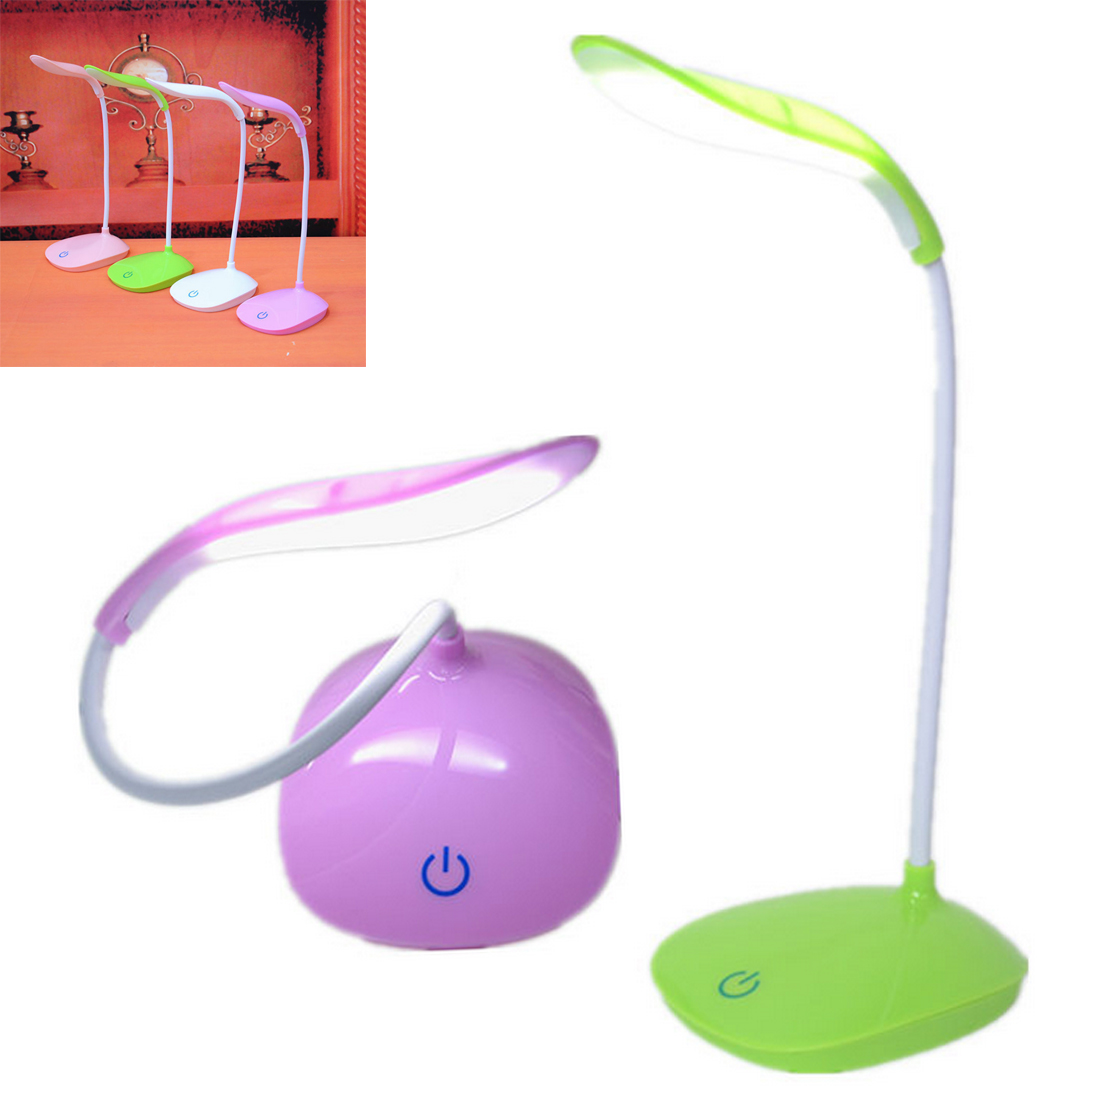 Mini Table Lamp 14LED Touch Screen Child Learning Eye Reading Lamp USB Charging Bedroom Bedside Lamp Reading LED LightsMini Table Lamp 14LED Touch Screen Child Learning Eye Reading Lamp USB Charging Bedroom Bedside Lamp Reading LED Lights